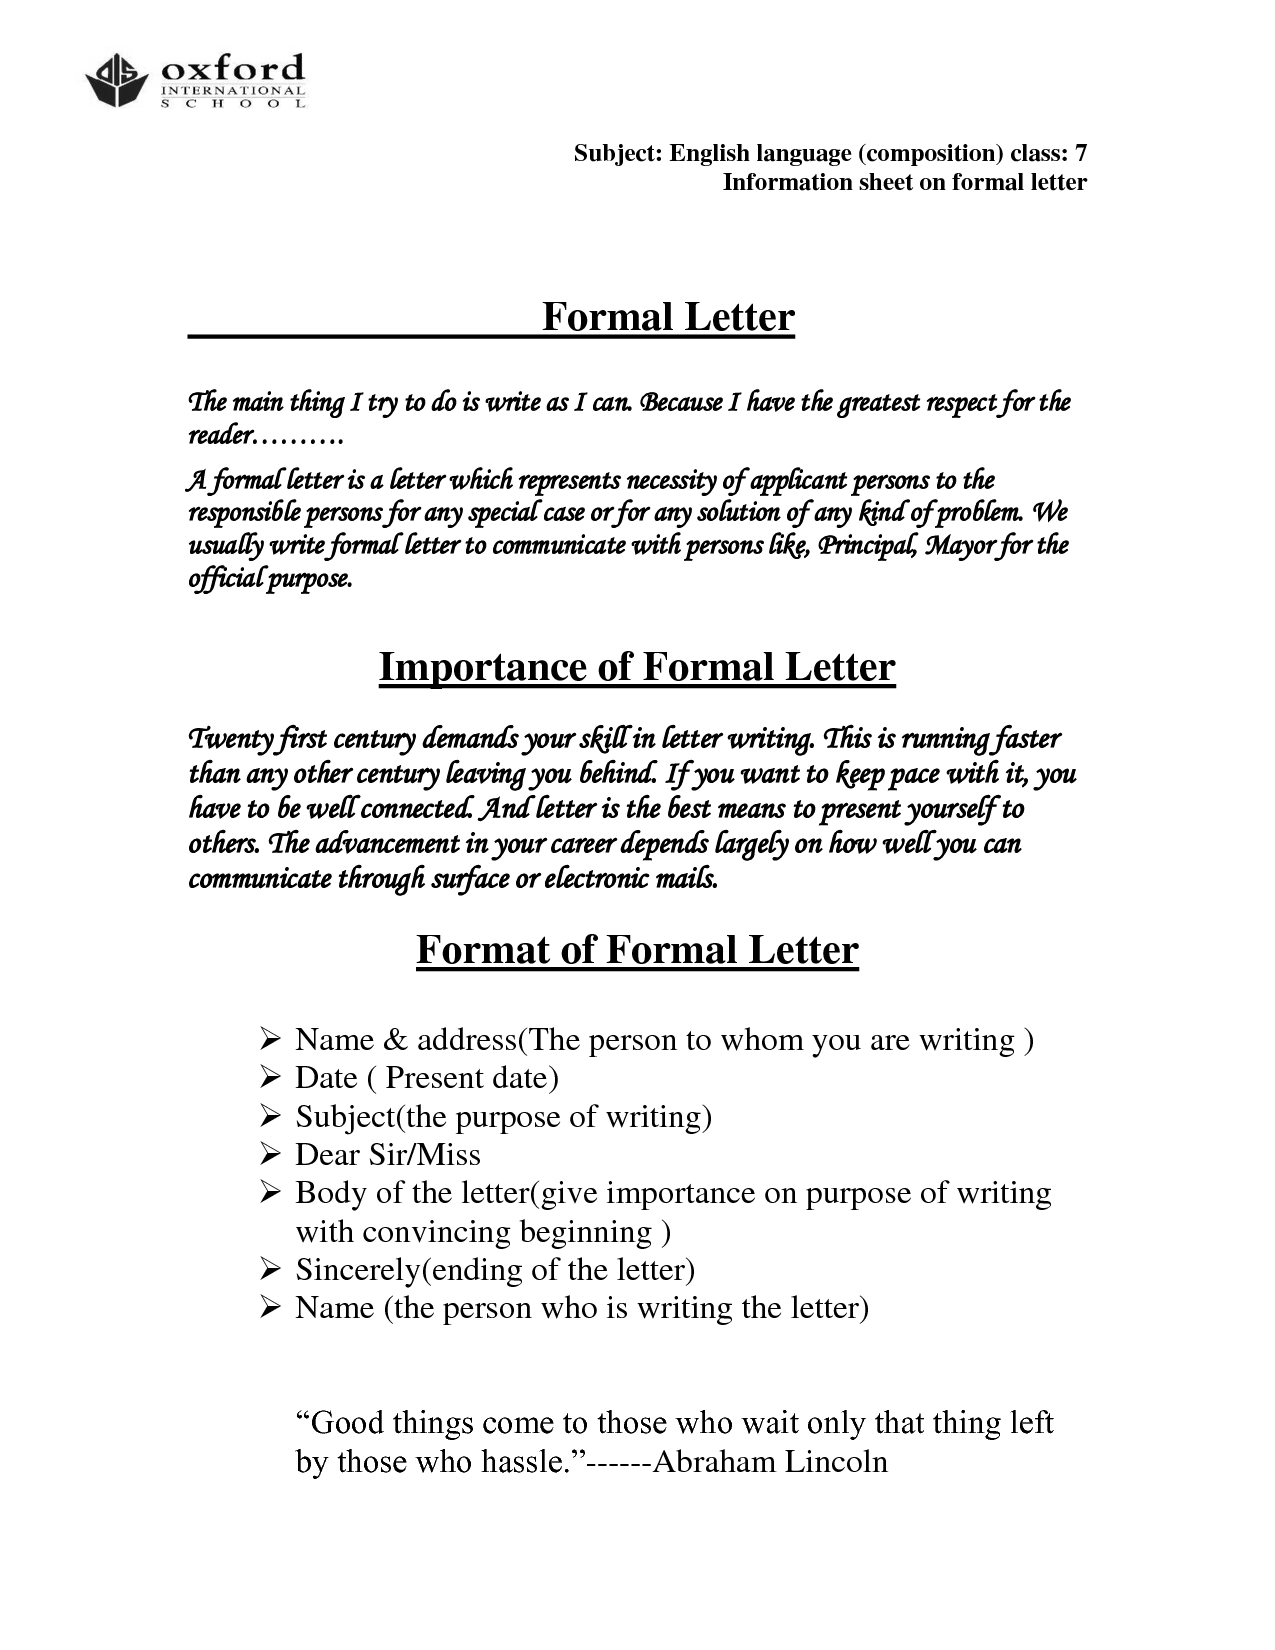 Official letter format templateofficial letter business letter official letter format templateofficial letter business letter sample accmission Choice Image